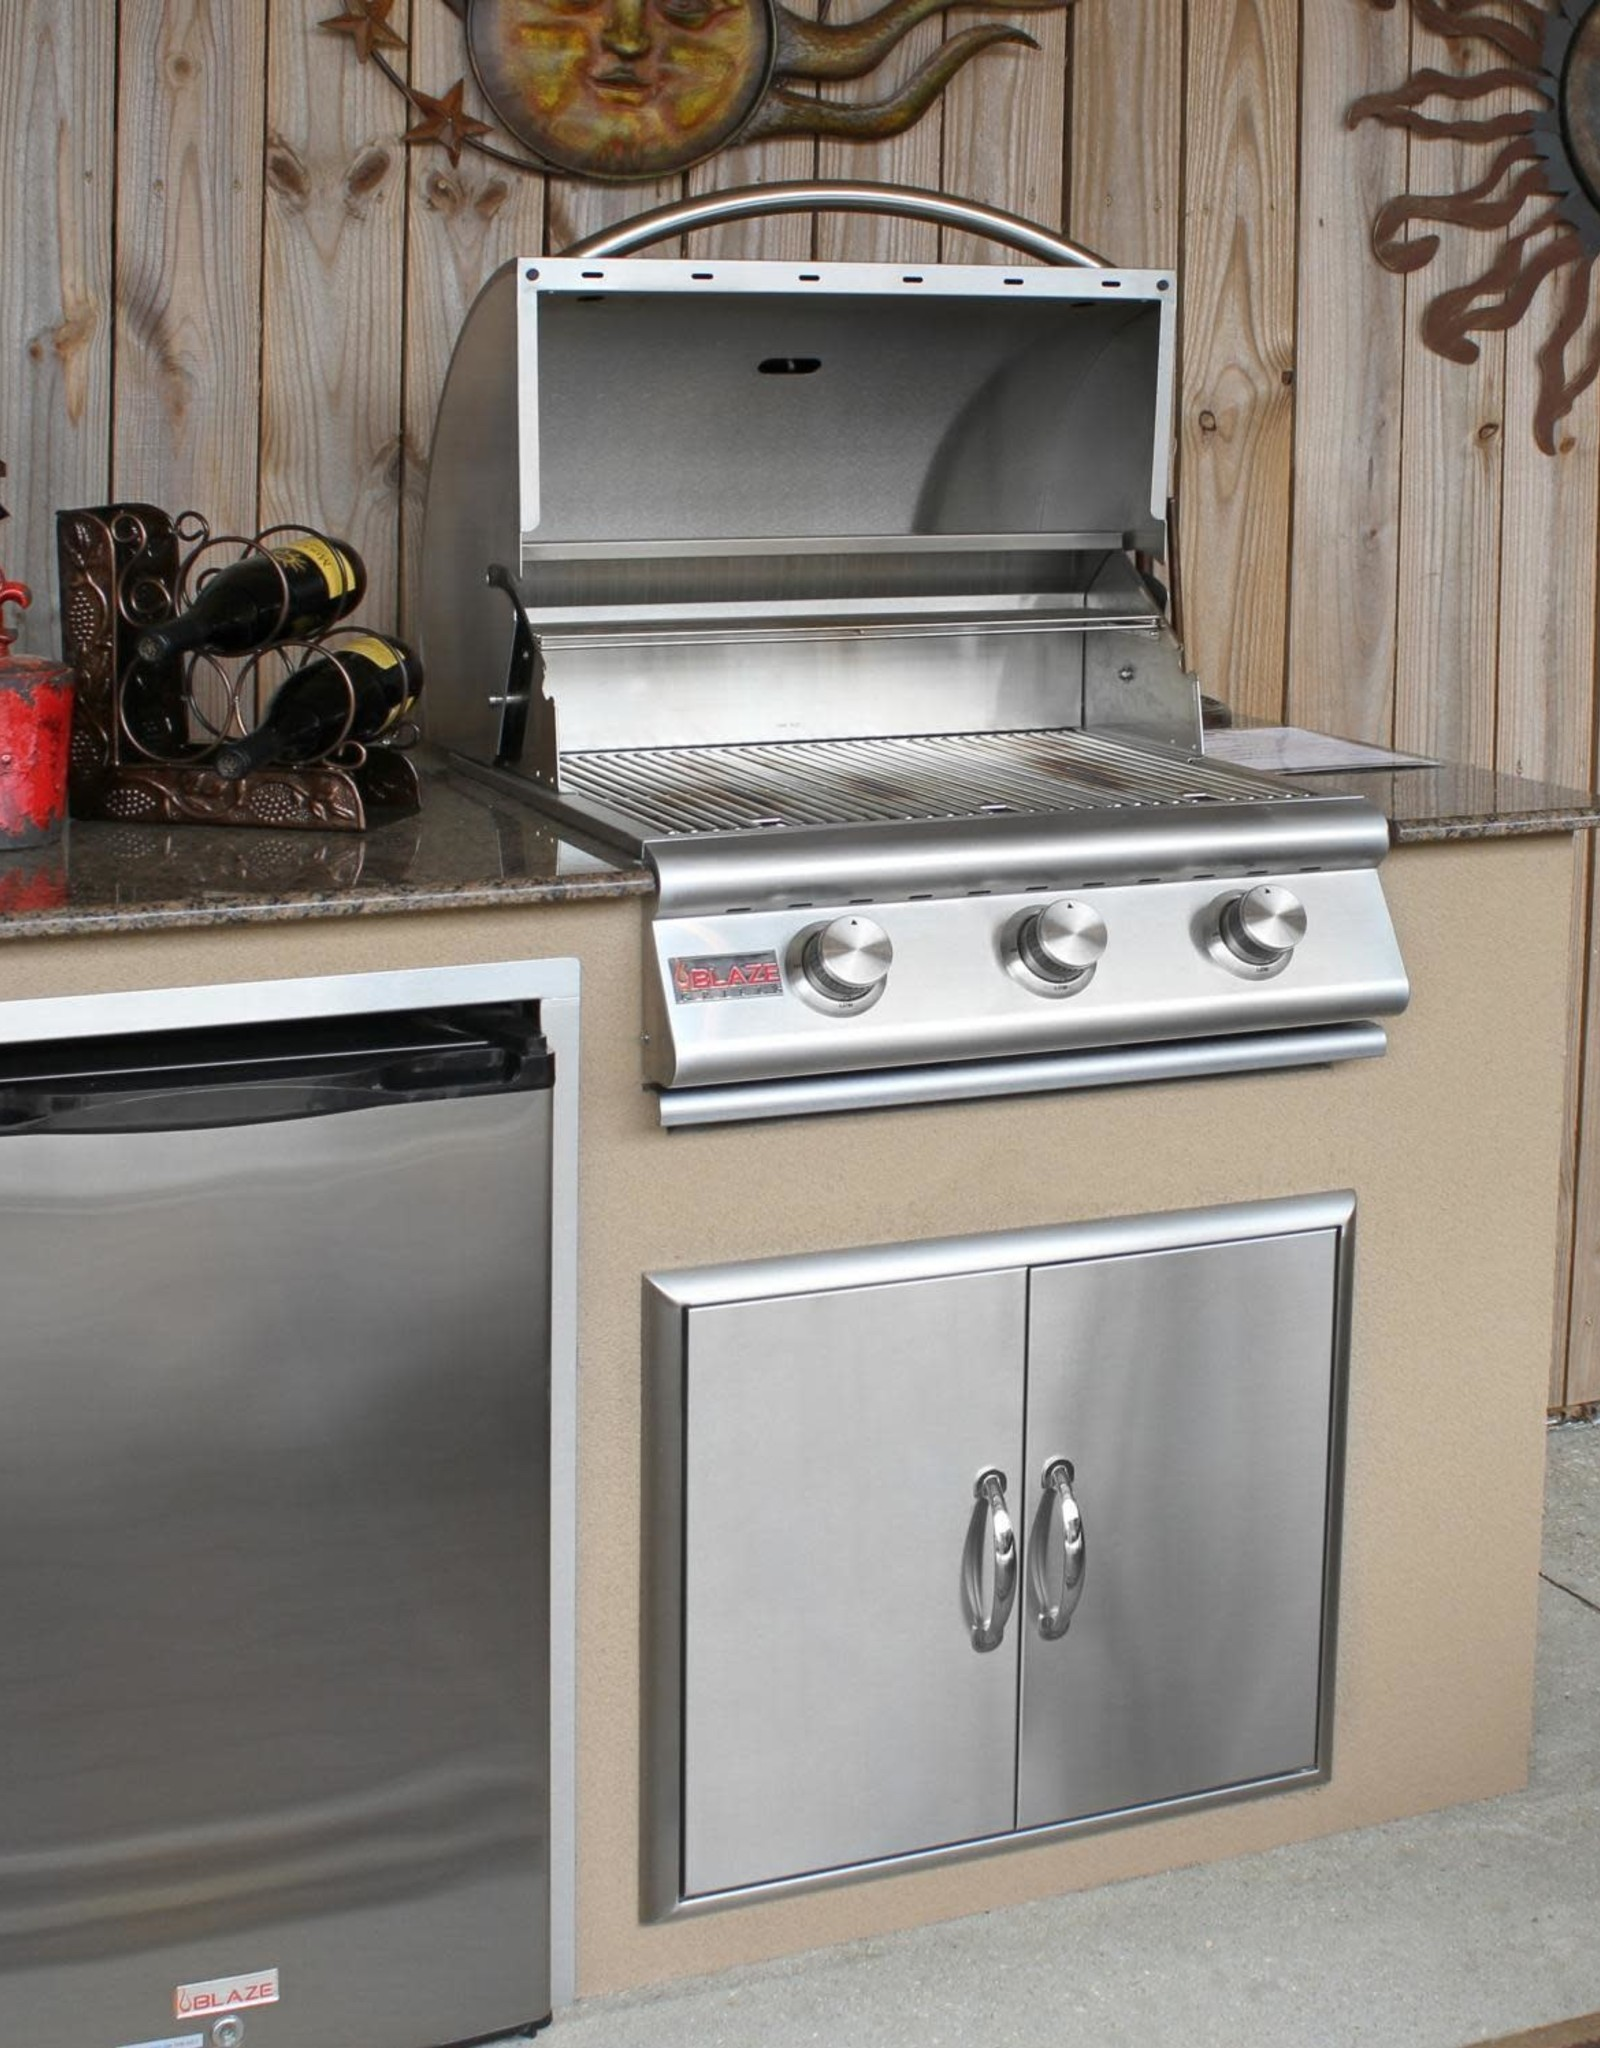 Blaze Outdoor Products Blaze  25-Inch 3-Burner Built-In Propane Gas Grill